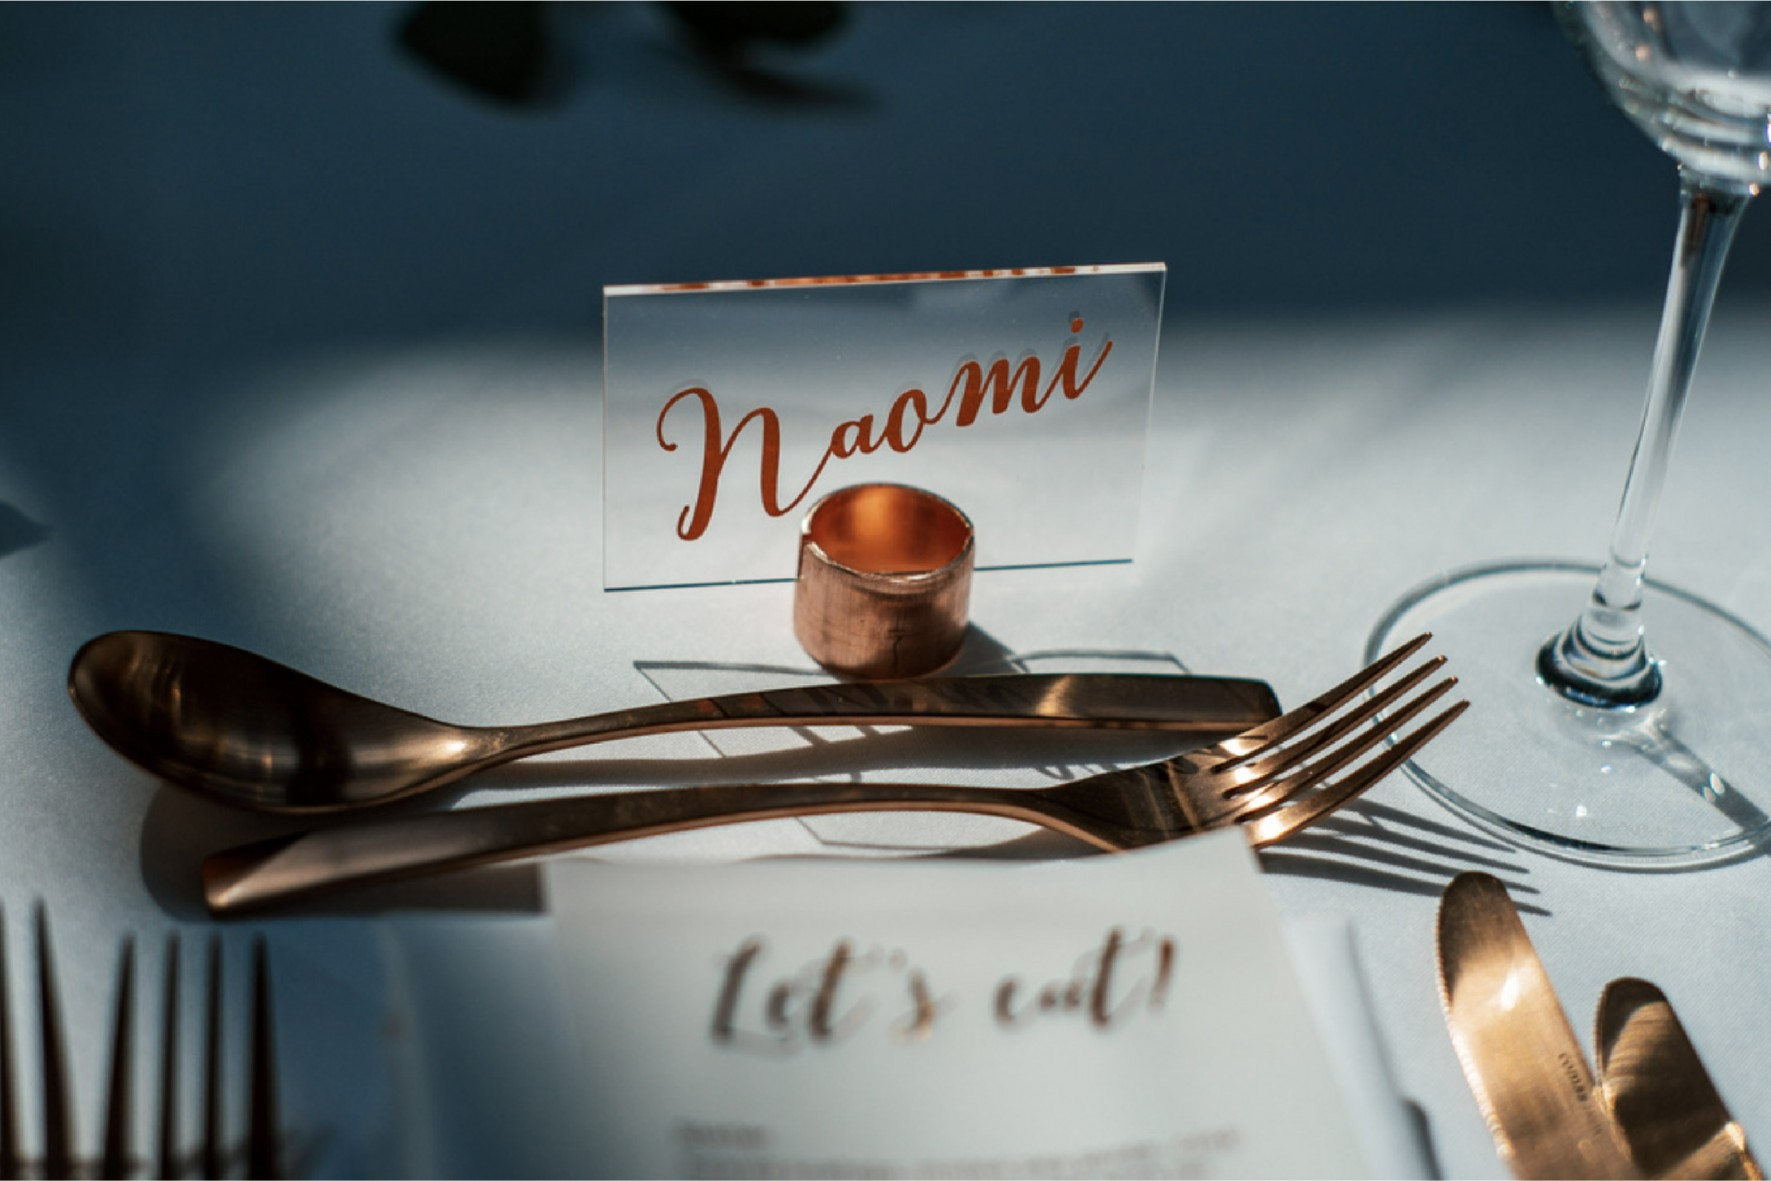 Clear acrylic place name in copper pipe stand with copper foil calligraphy vinyl lettering - stationery and styling by www.rosepaperscissors.com